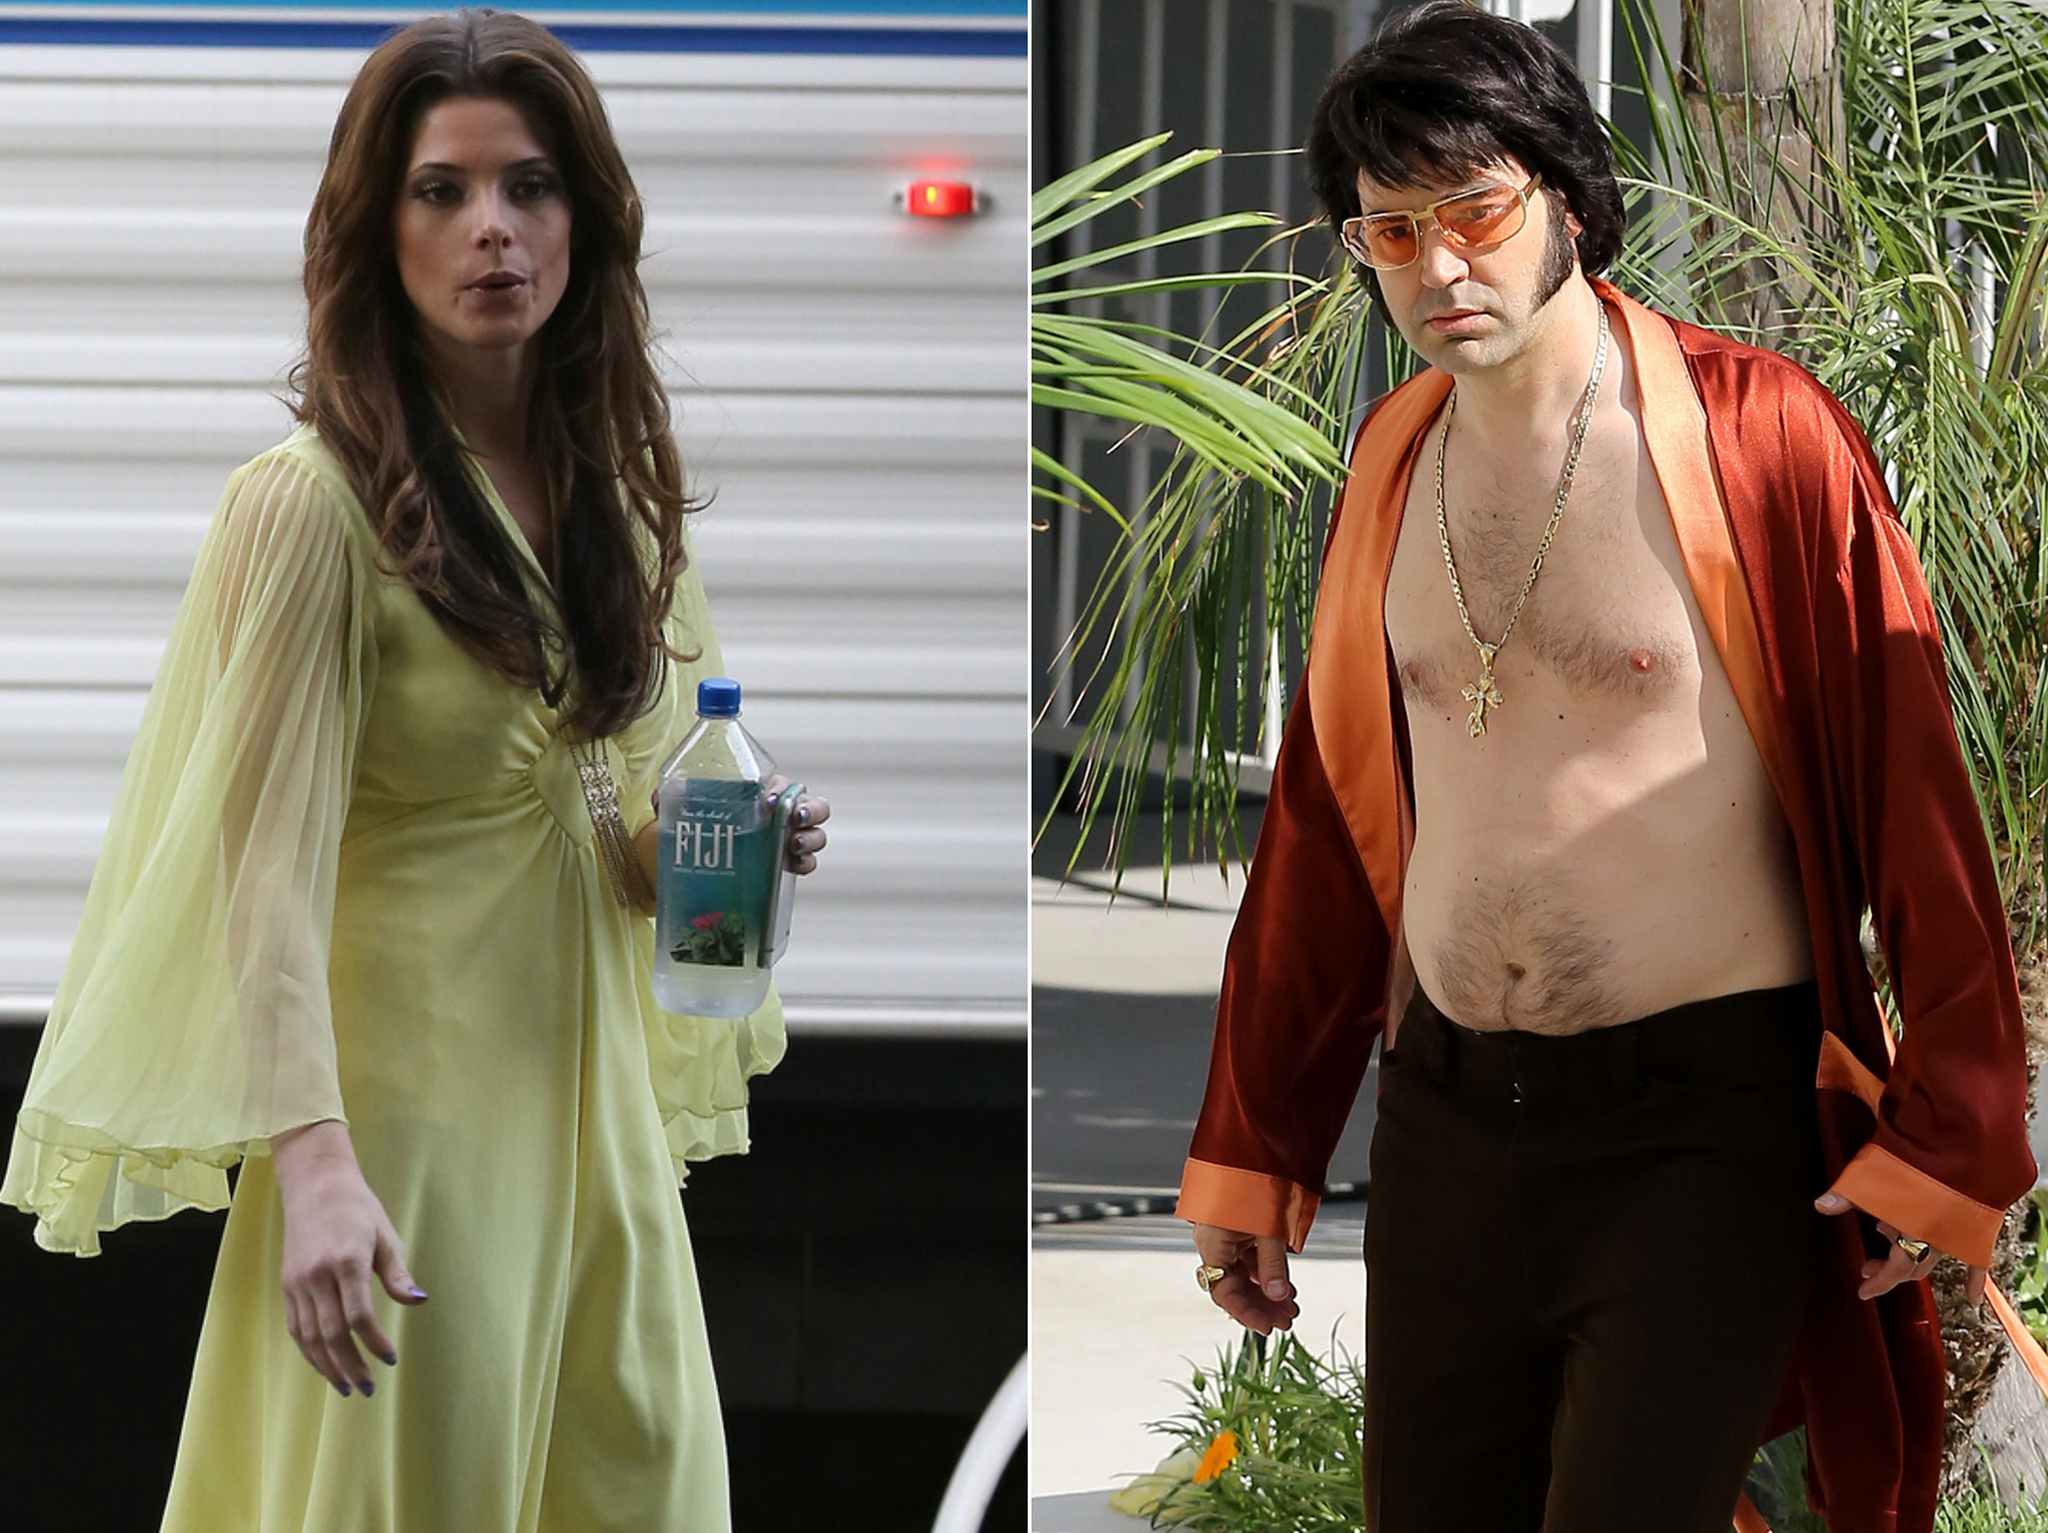 Ashley Greene and Ron Livingston as Priscilla and Elvis Presley on the set of 'The Shangri-La Suite' (Pacific Coast News)